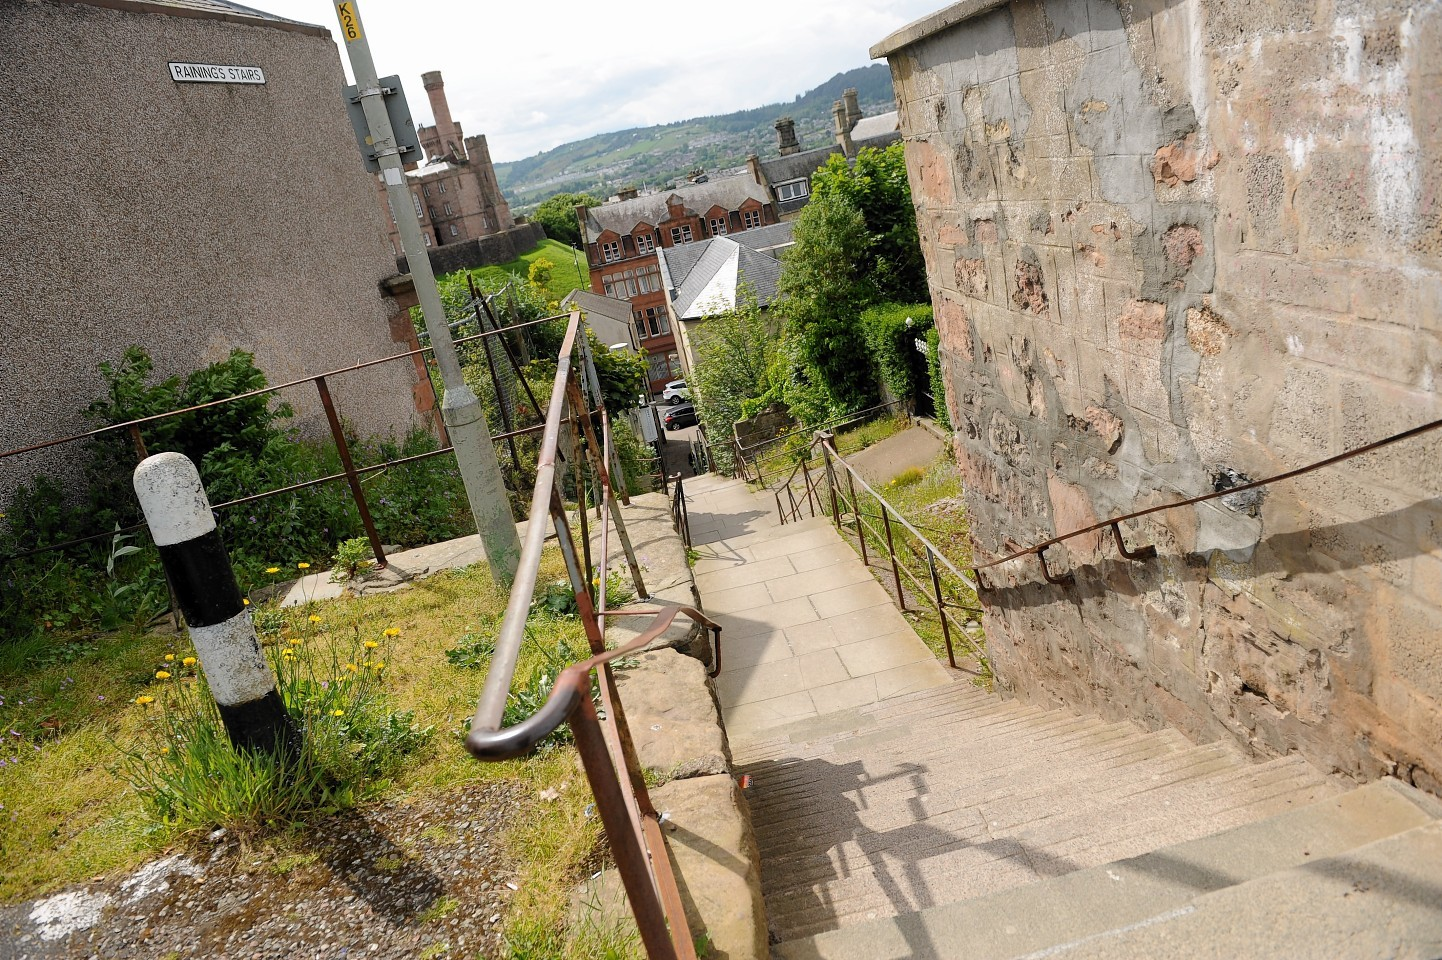 The Raining Stairs in Inverness are set to close for repairs